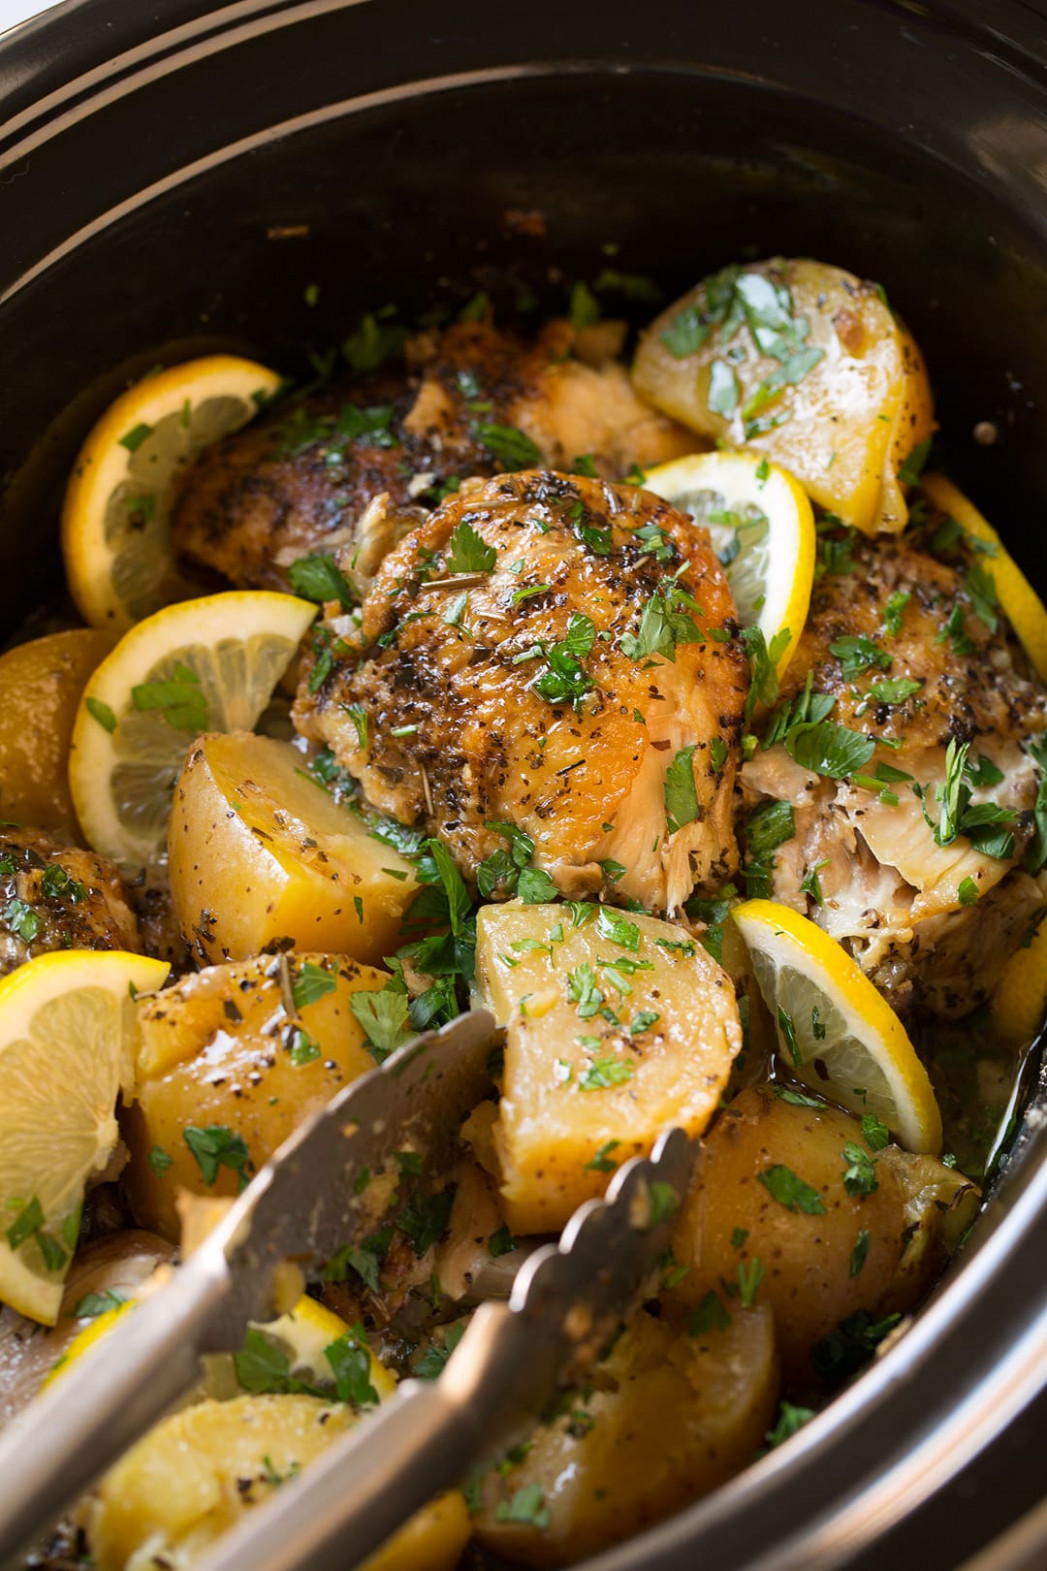 Greek Slow Cooker Lemon Chicken And Potatoes - Recipes Lemon Chicken